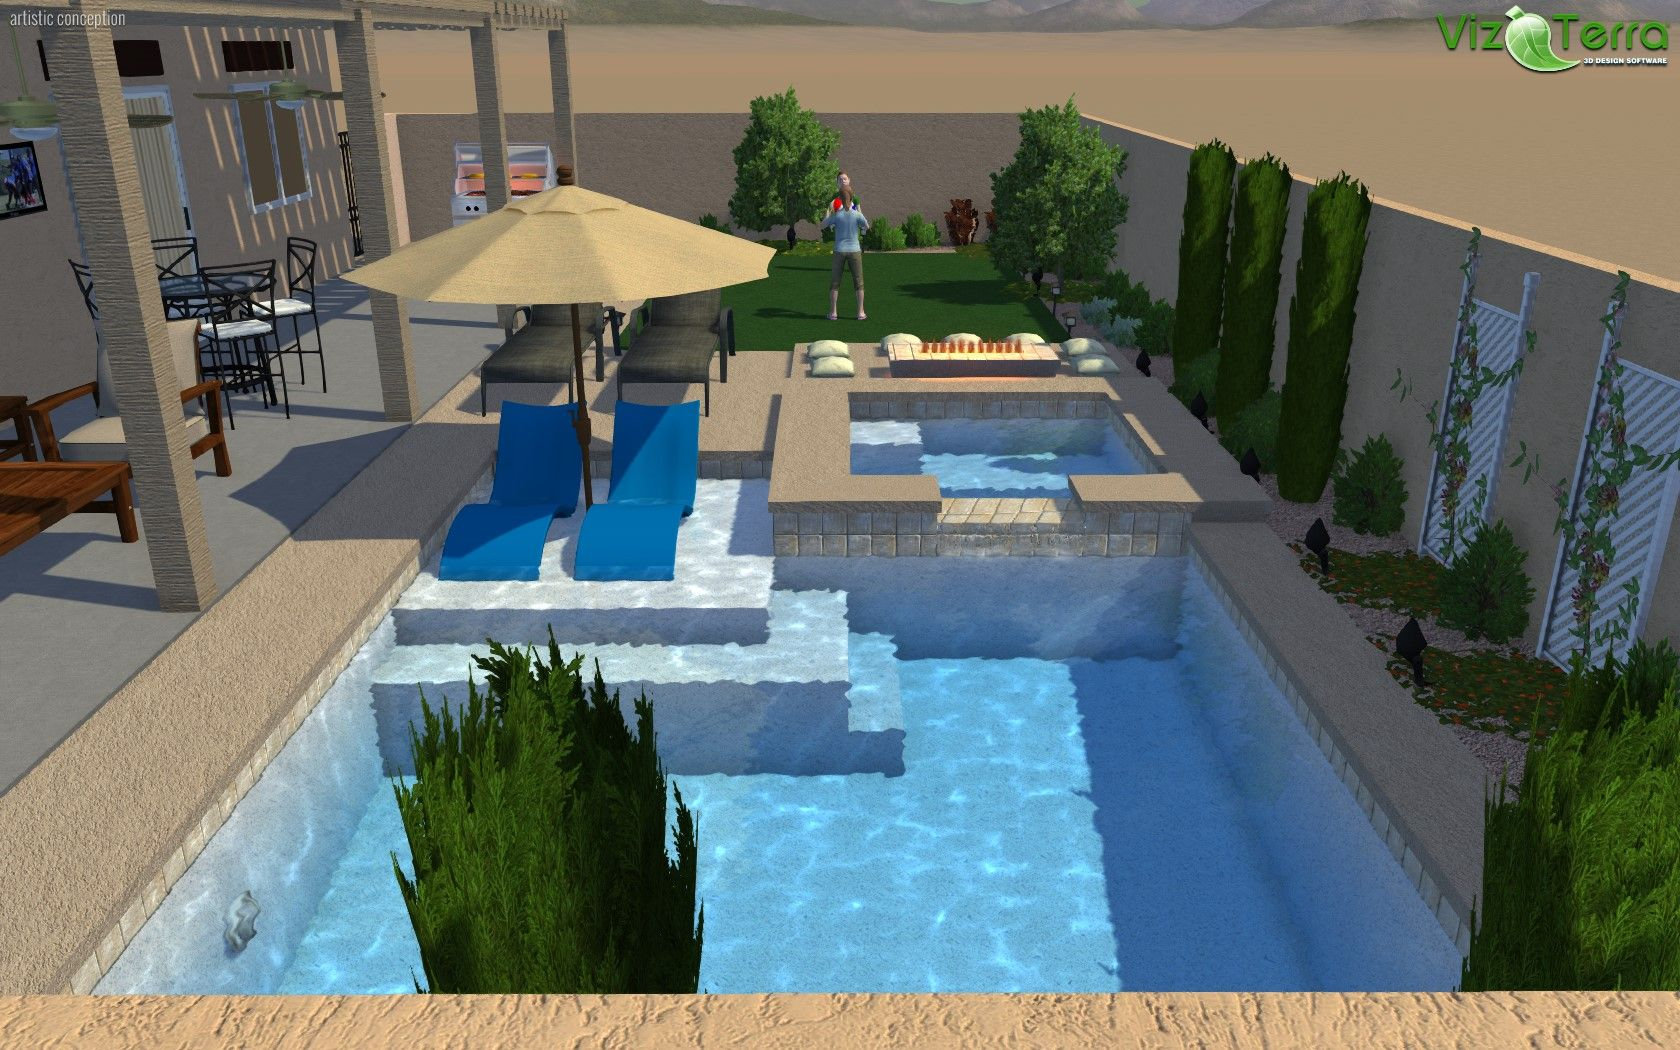 3d Landscape And Pool Design This Job Has Everything You Know